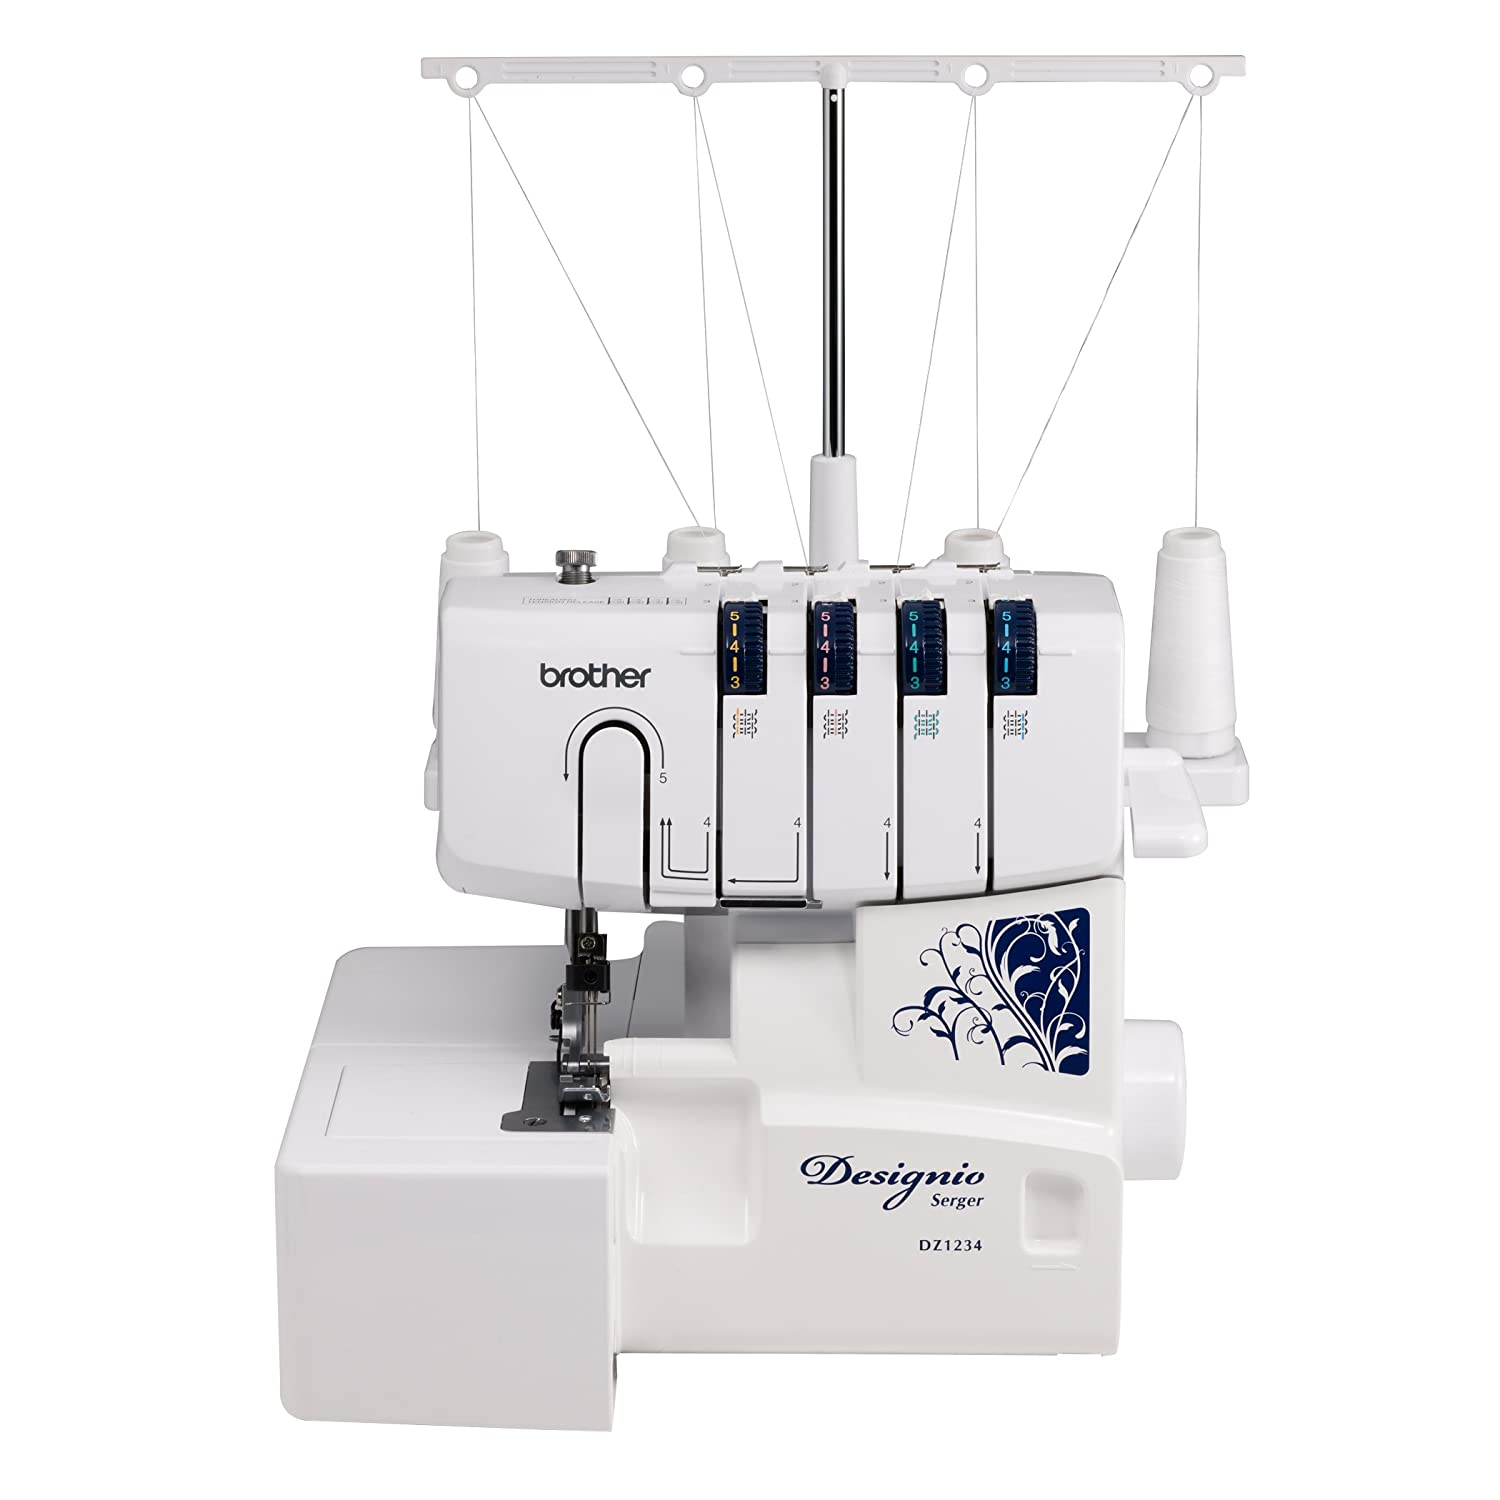 Brother Designio Series DZ1234 Serger Reviews 1